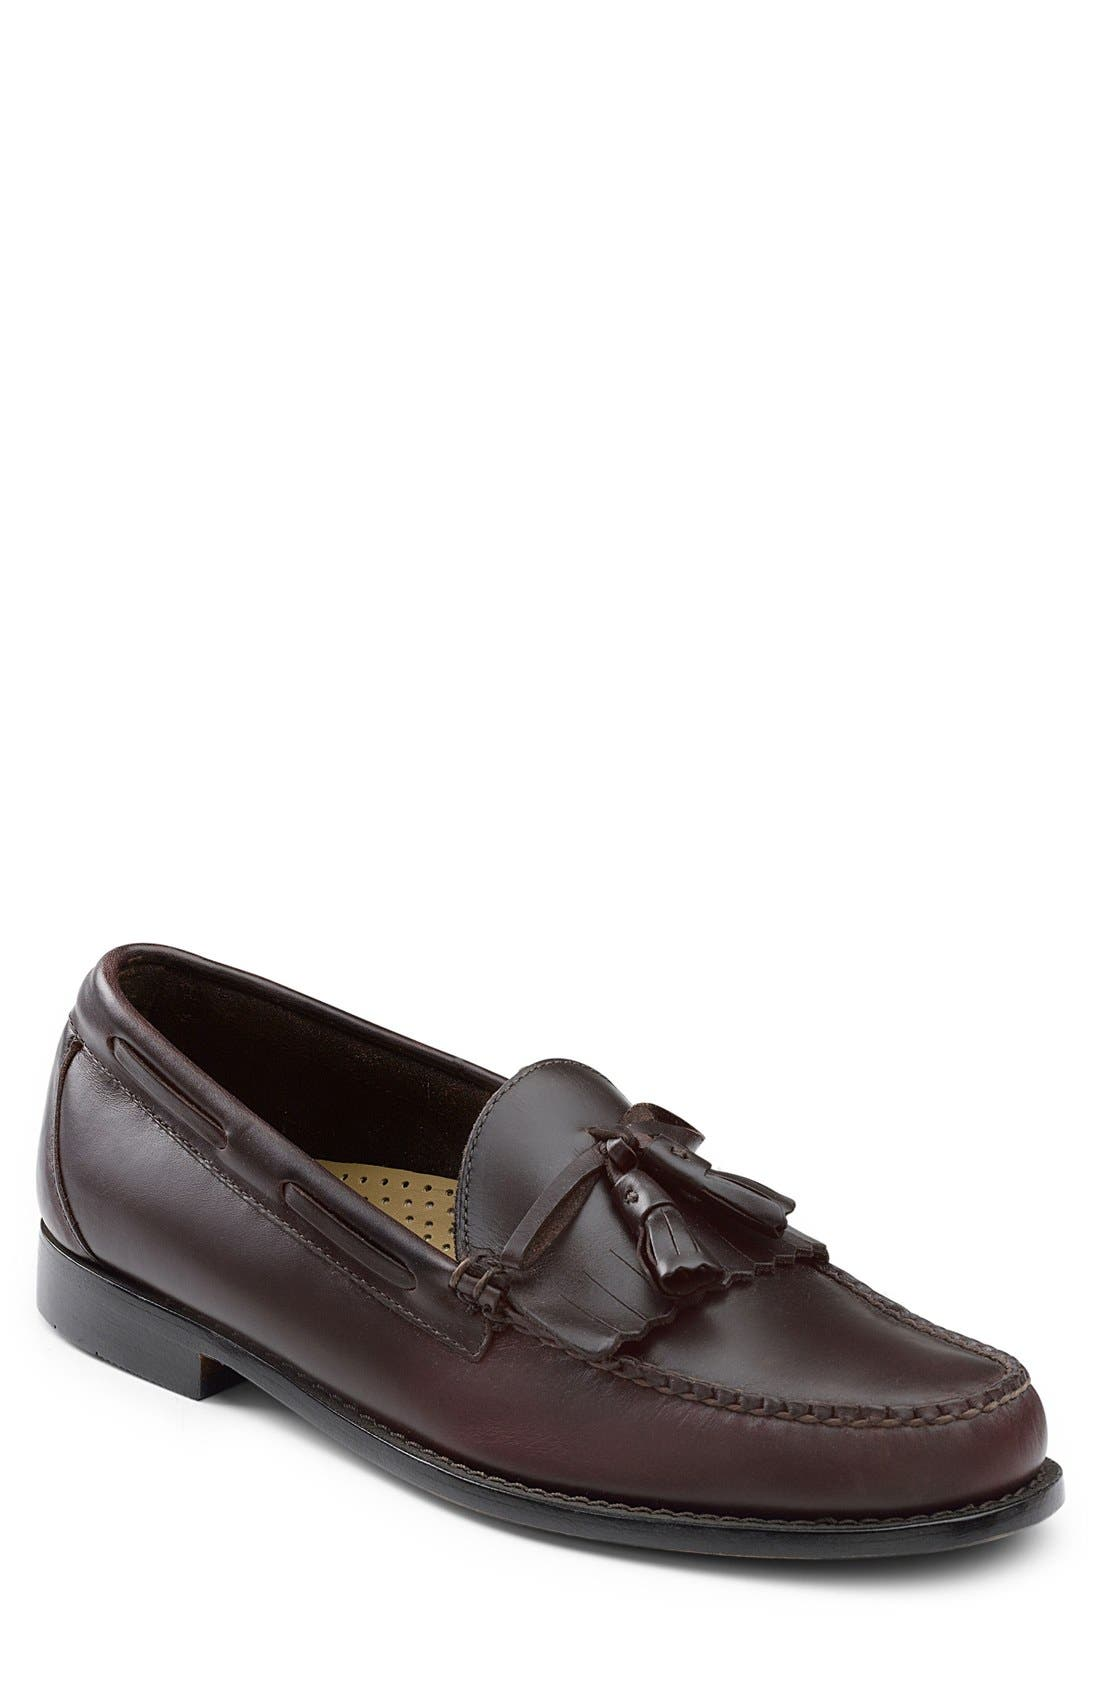 'Lawrence' Tassel Loafer,                             Main thumbnail 3, color,